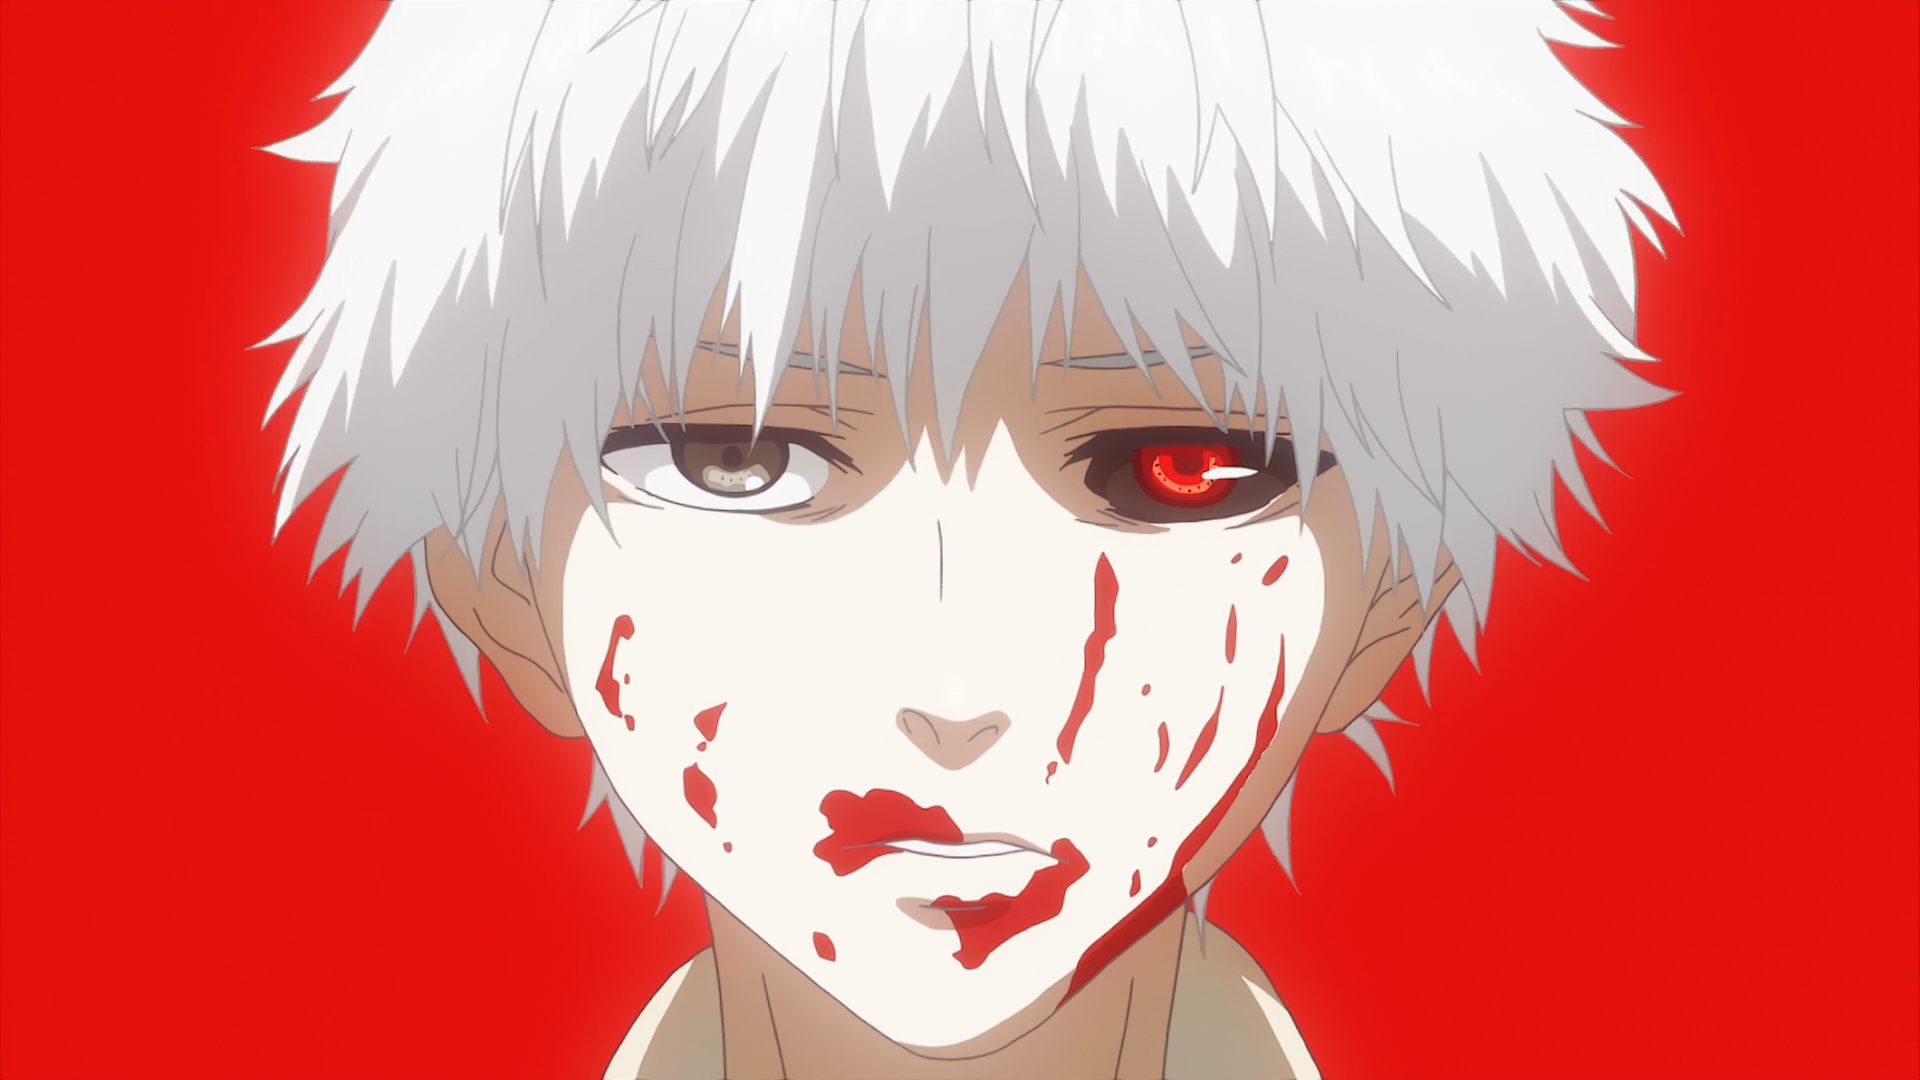 Datei:Kaneki accepting being a ghoul.png